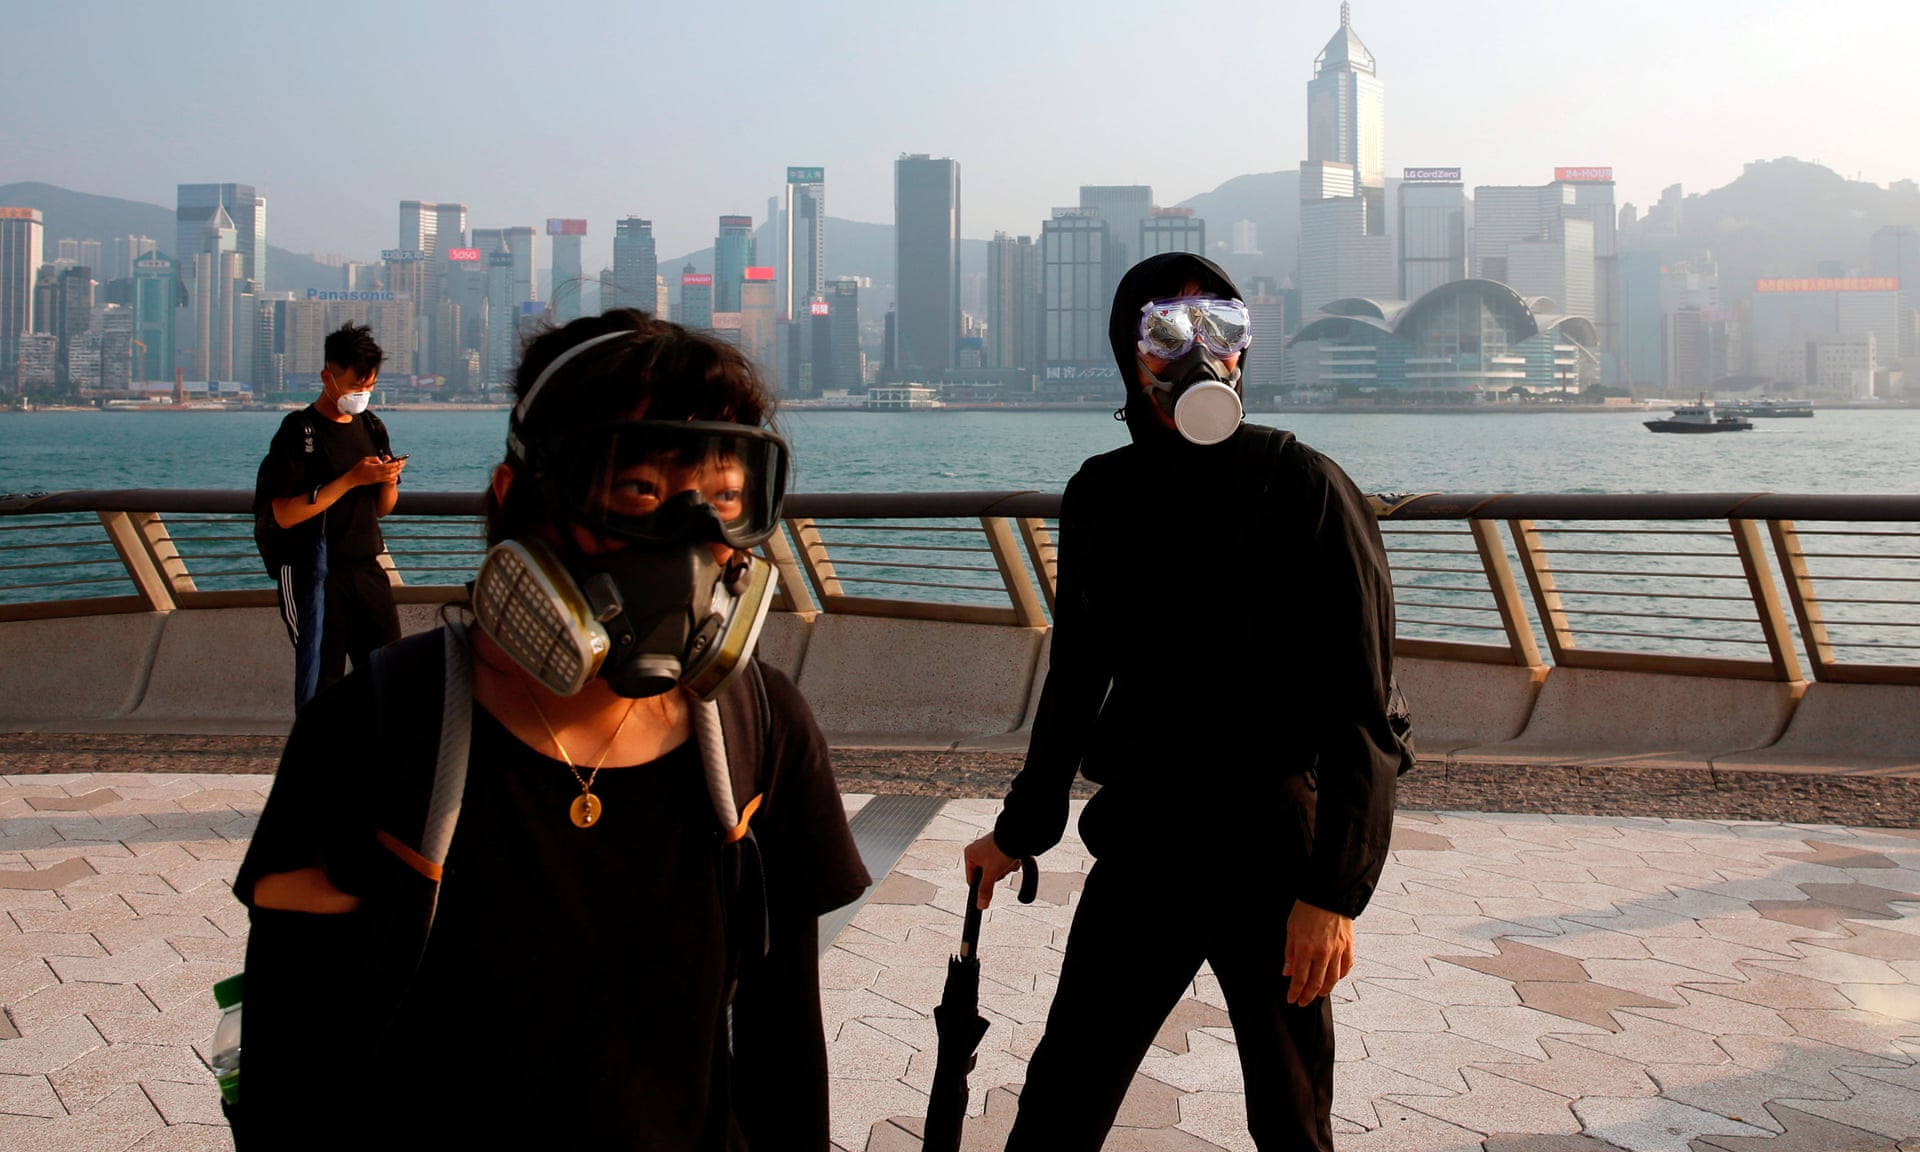 'Vast numbers still turn out for unauthorised protests, wearing masks to taunt the administration and underscore its impotence.' Photograph: Tyrone Siu/Reuters